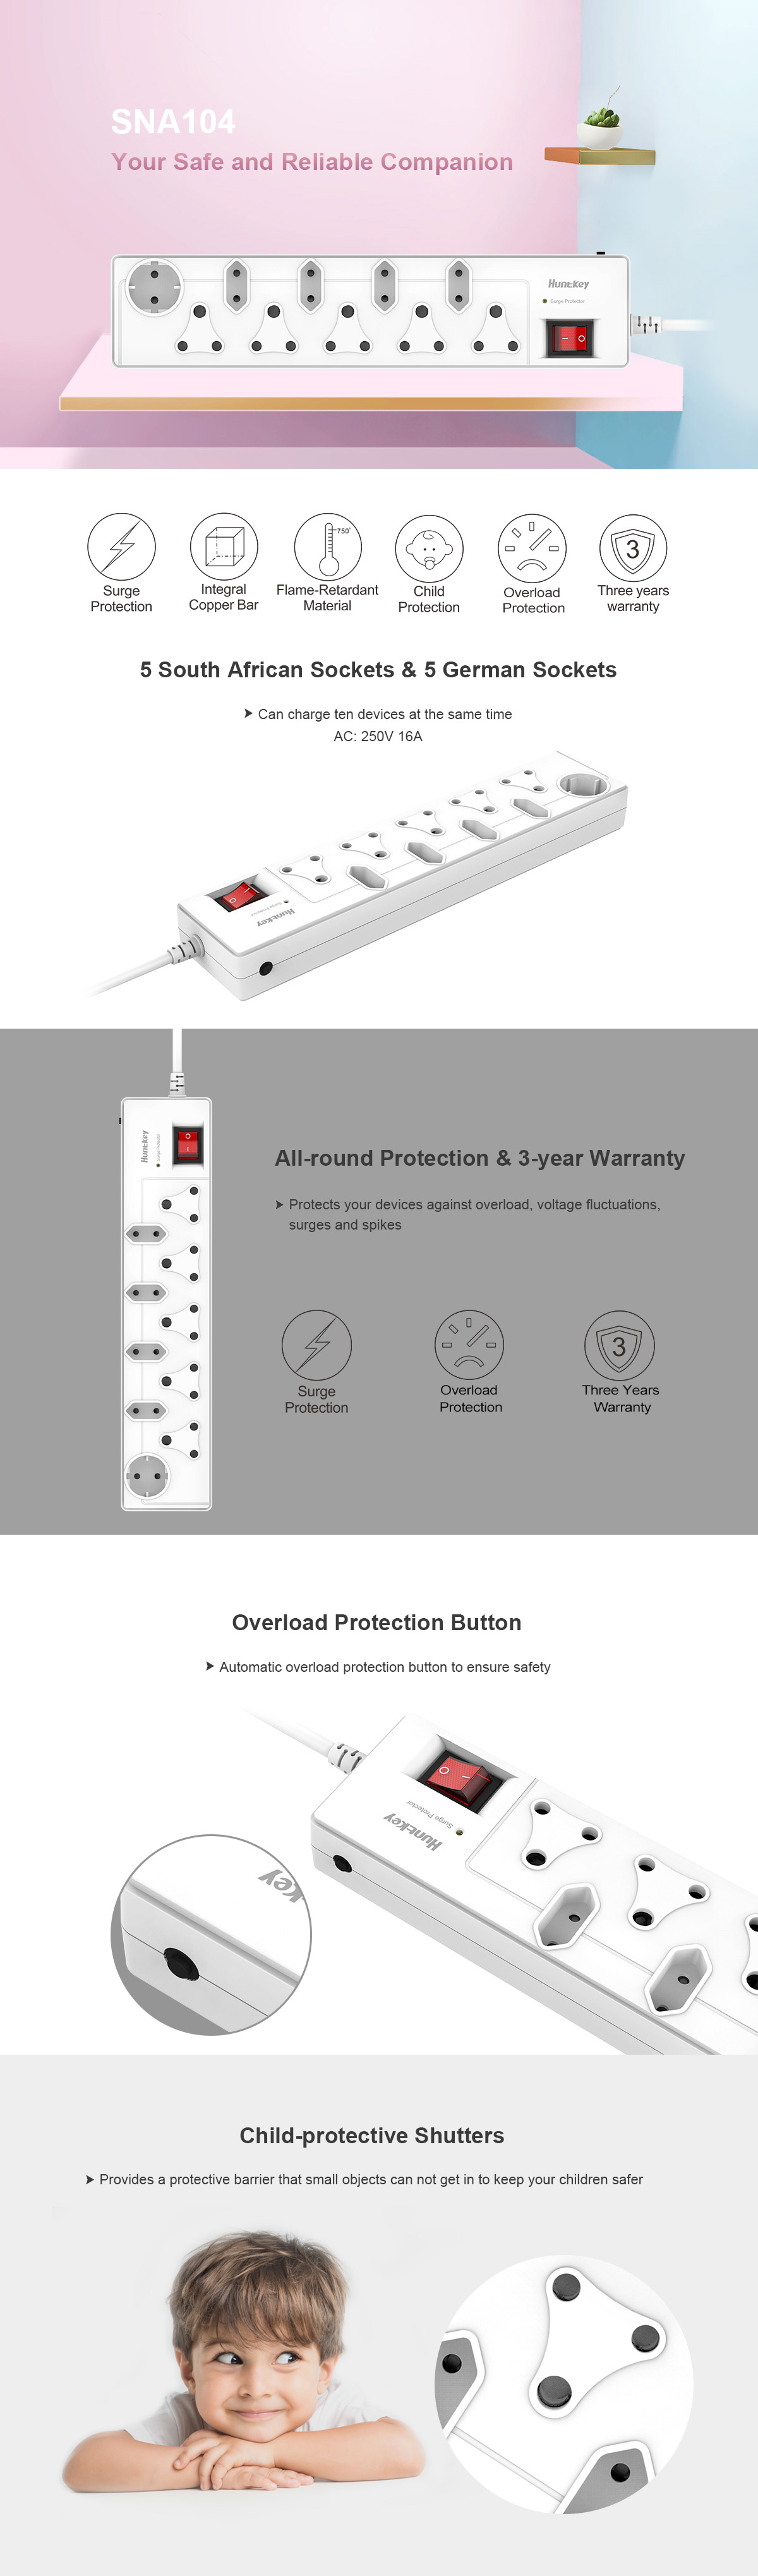 surge-protector-16 SNA104